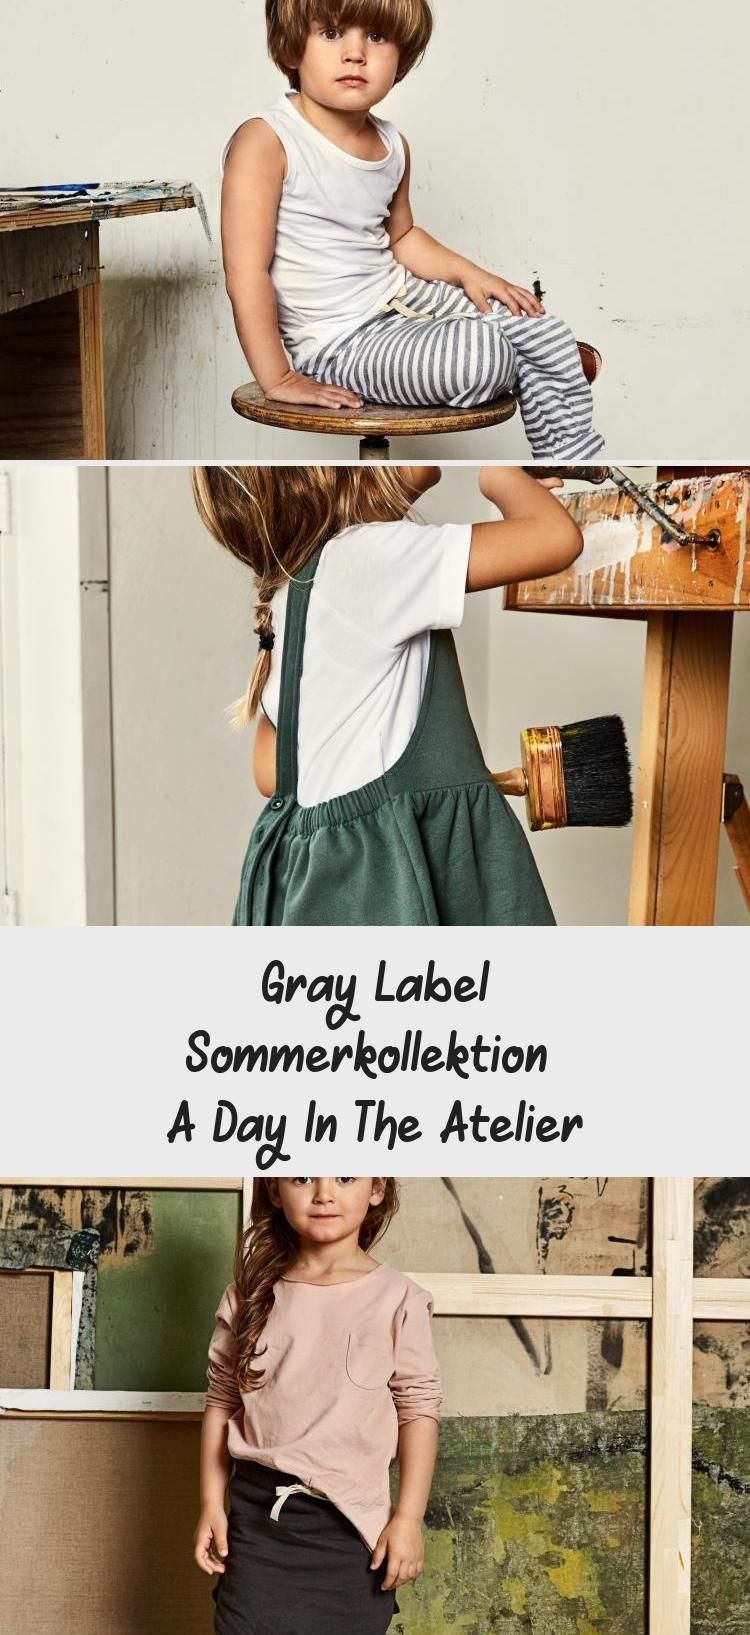 Gray Label Sommerkollektion – A Day In The Atelier – Fashion